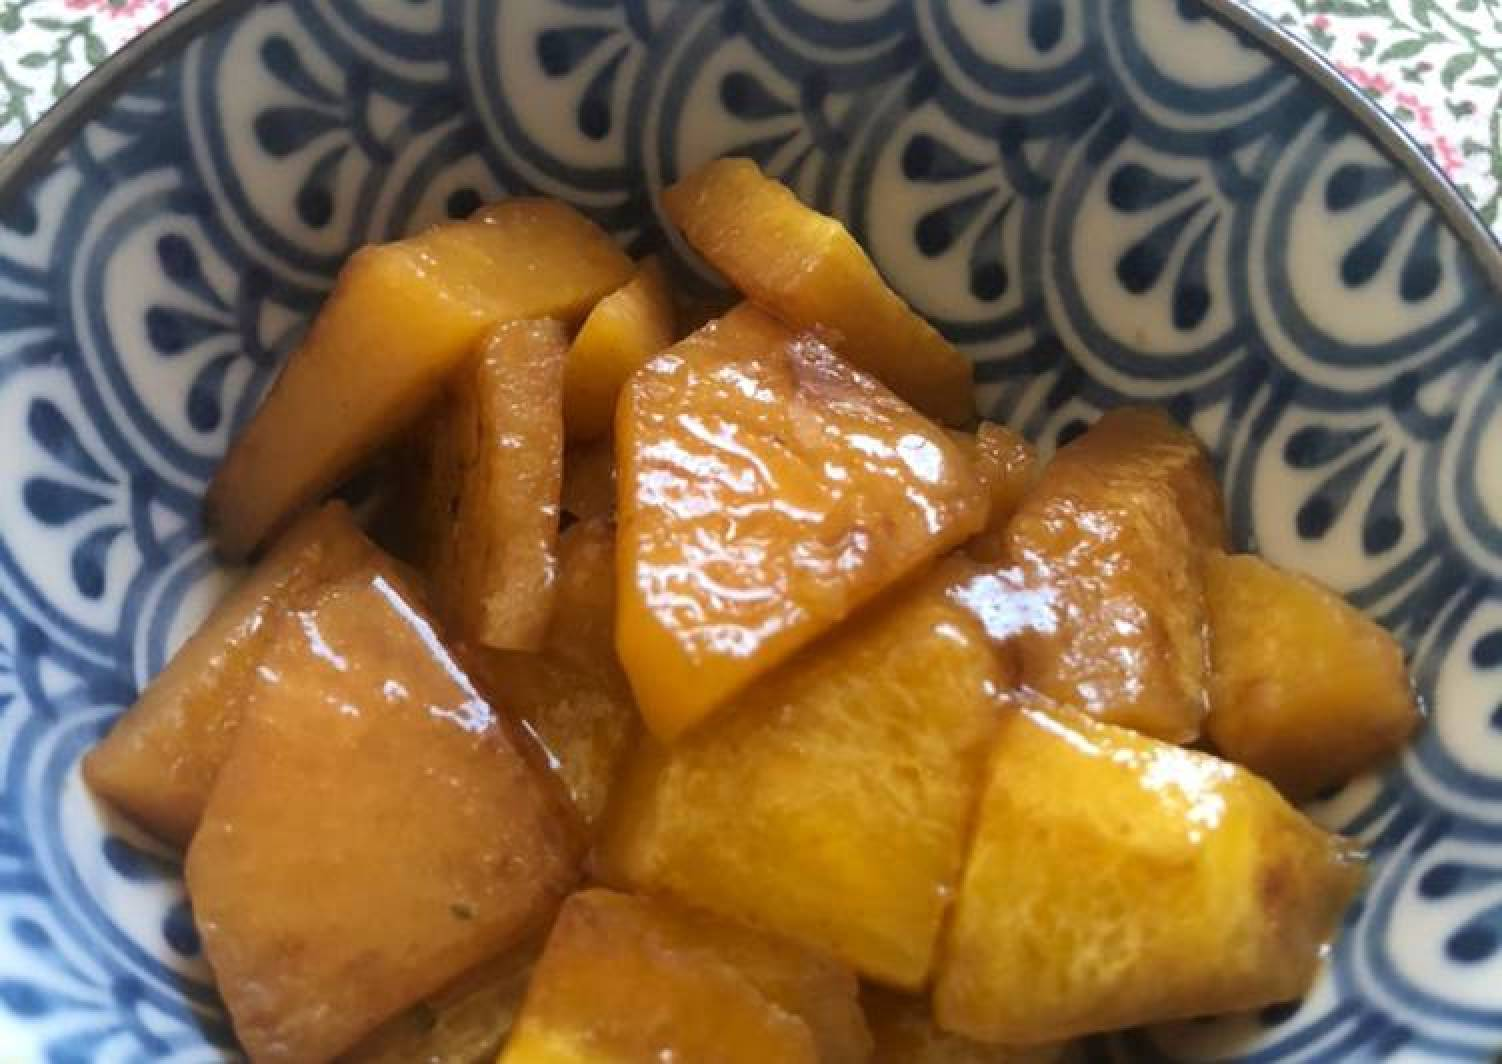 Braised swede - can be vegan